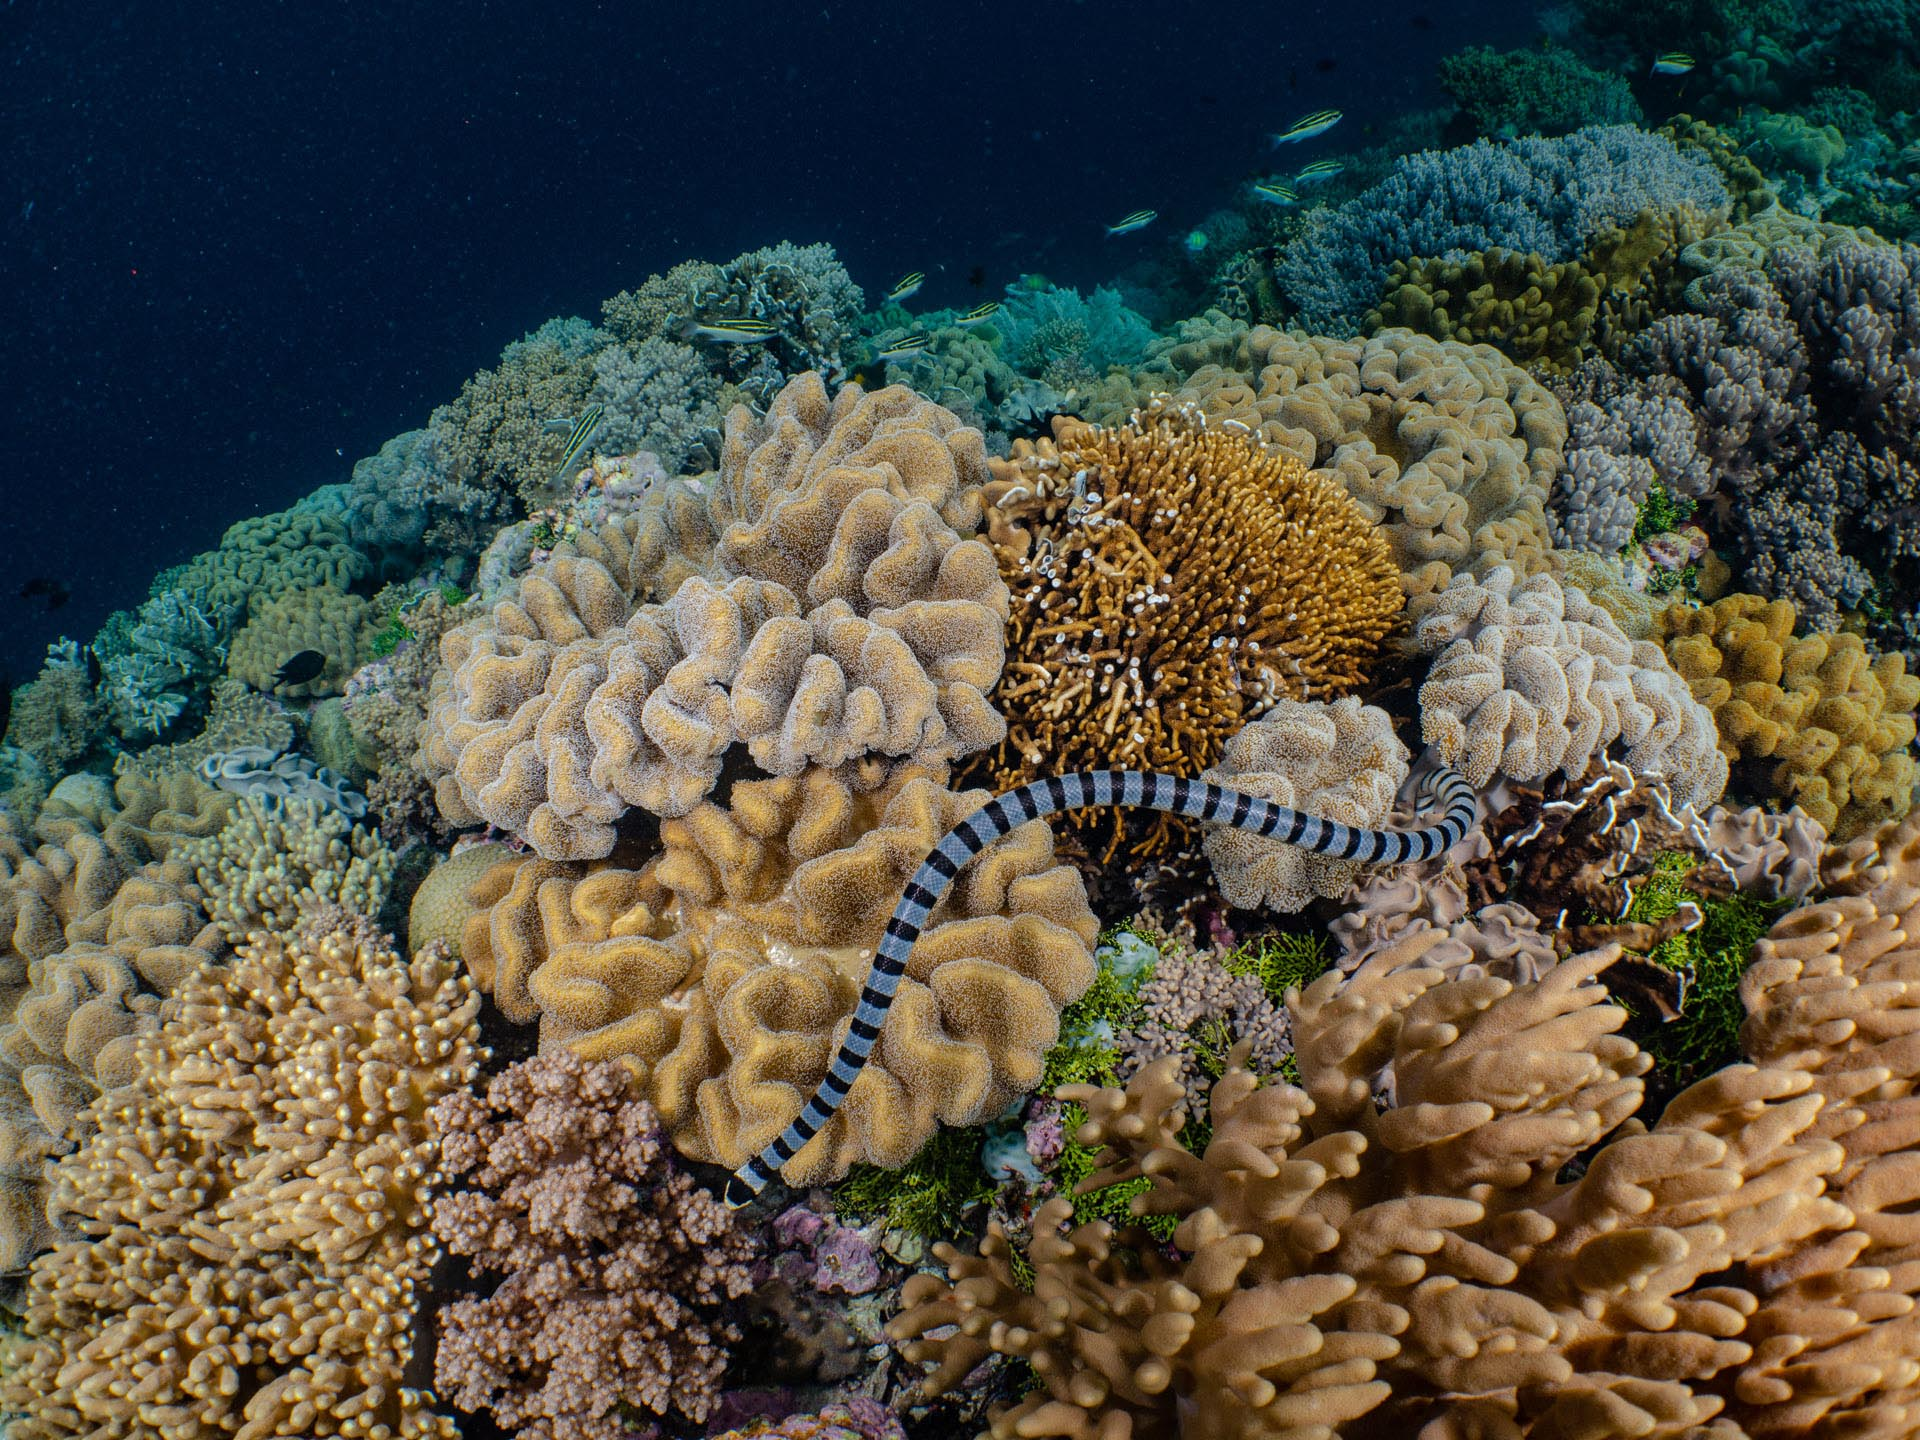 Banded sea snake on coral reef